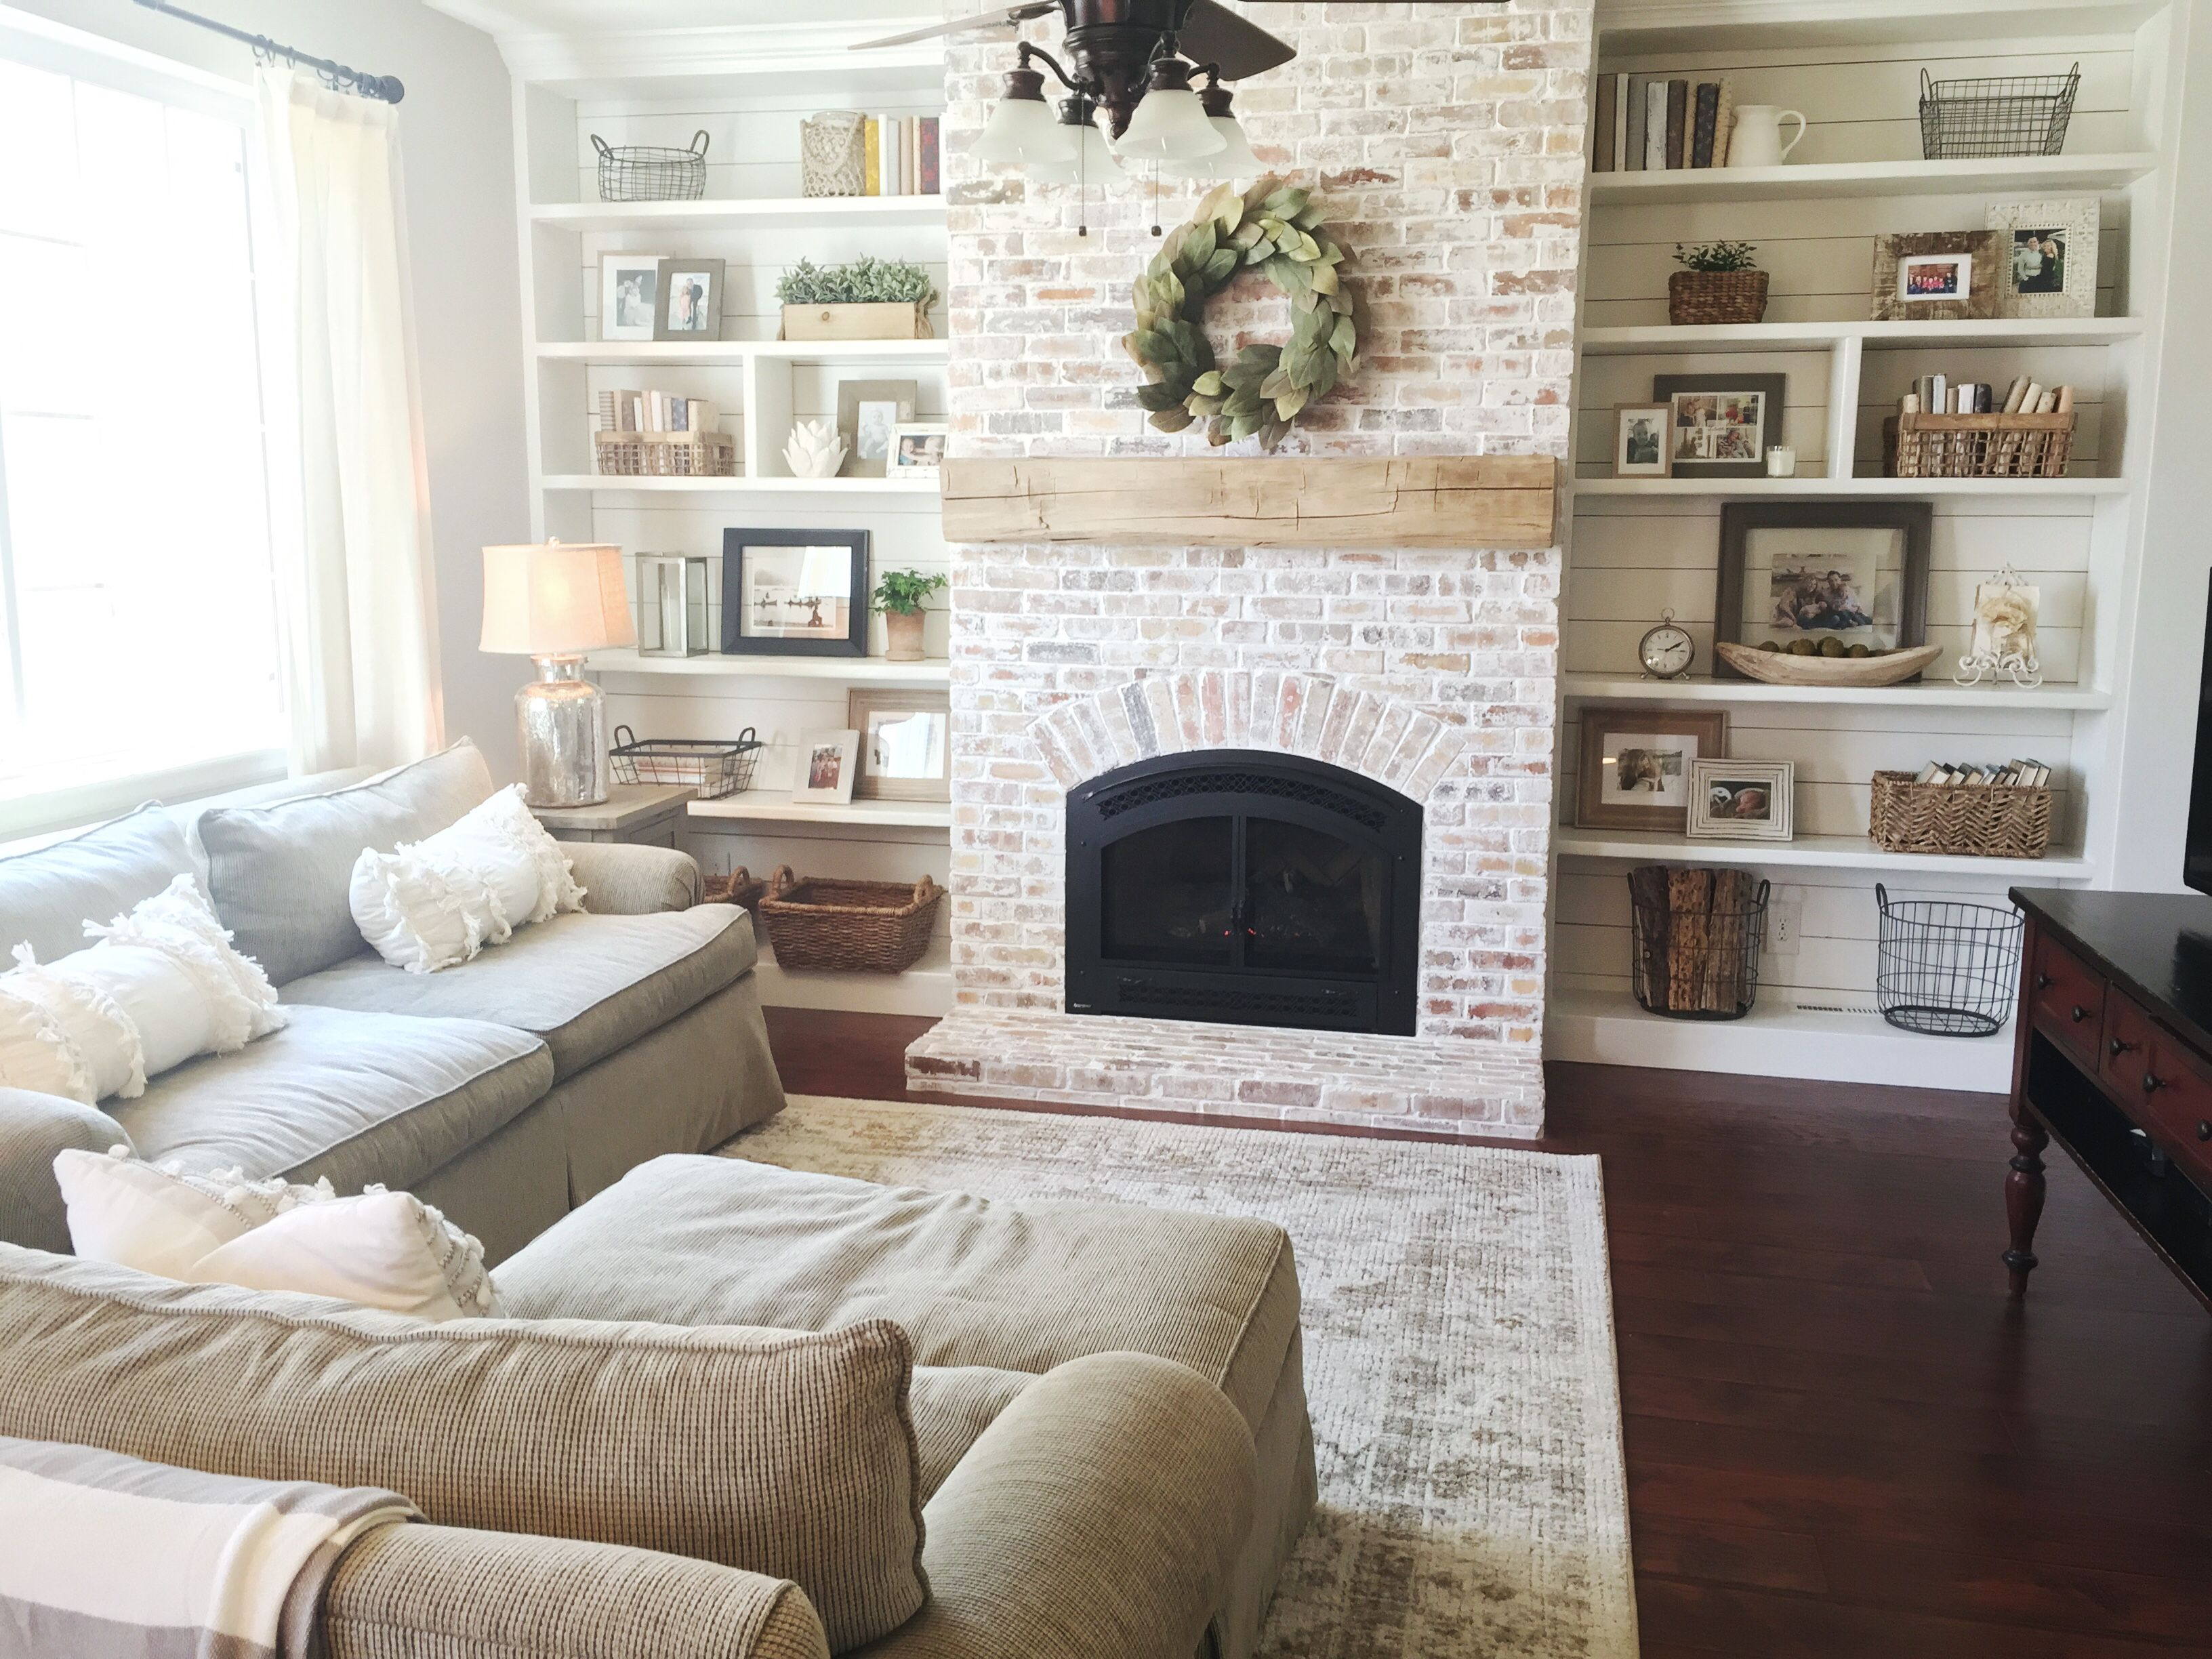 White Fireplace with Shelves Beautiful Built Ins Shiplap Whitewash Brick Fireplace Bookshelf